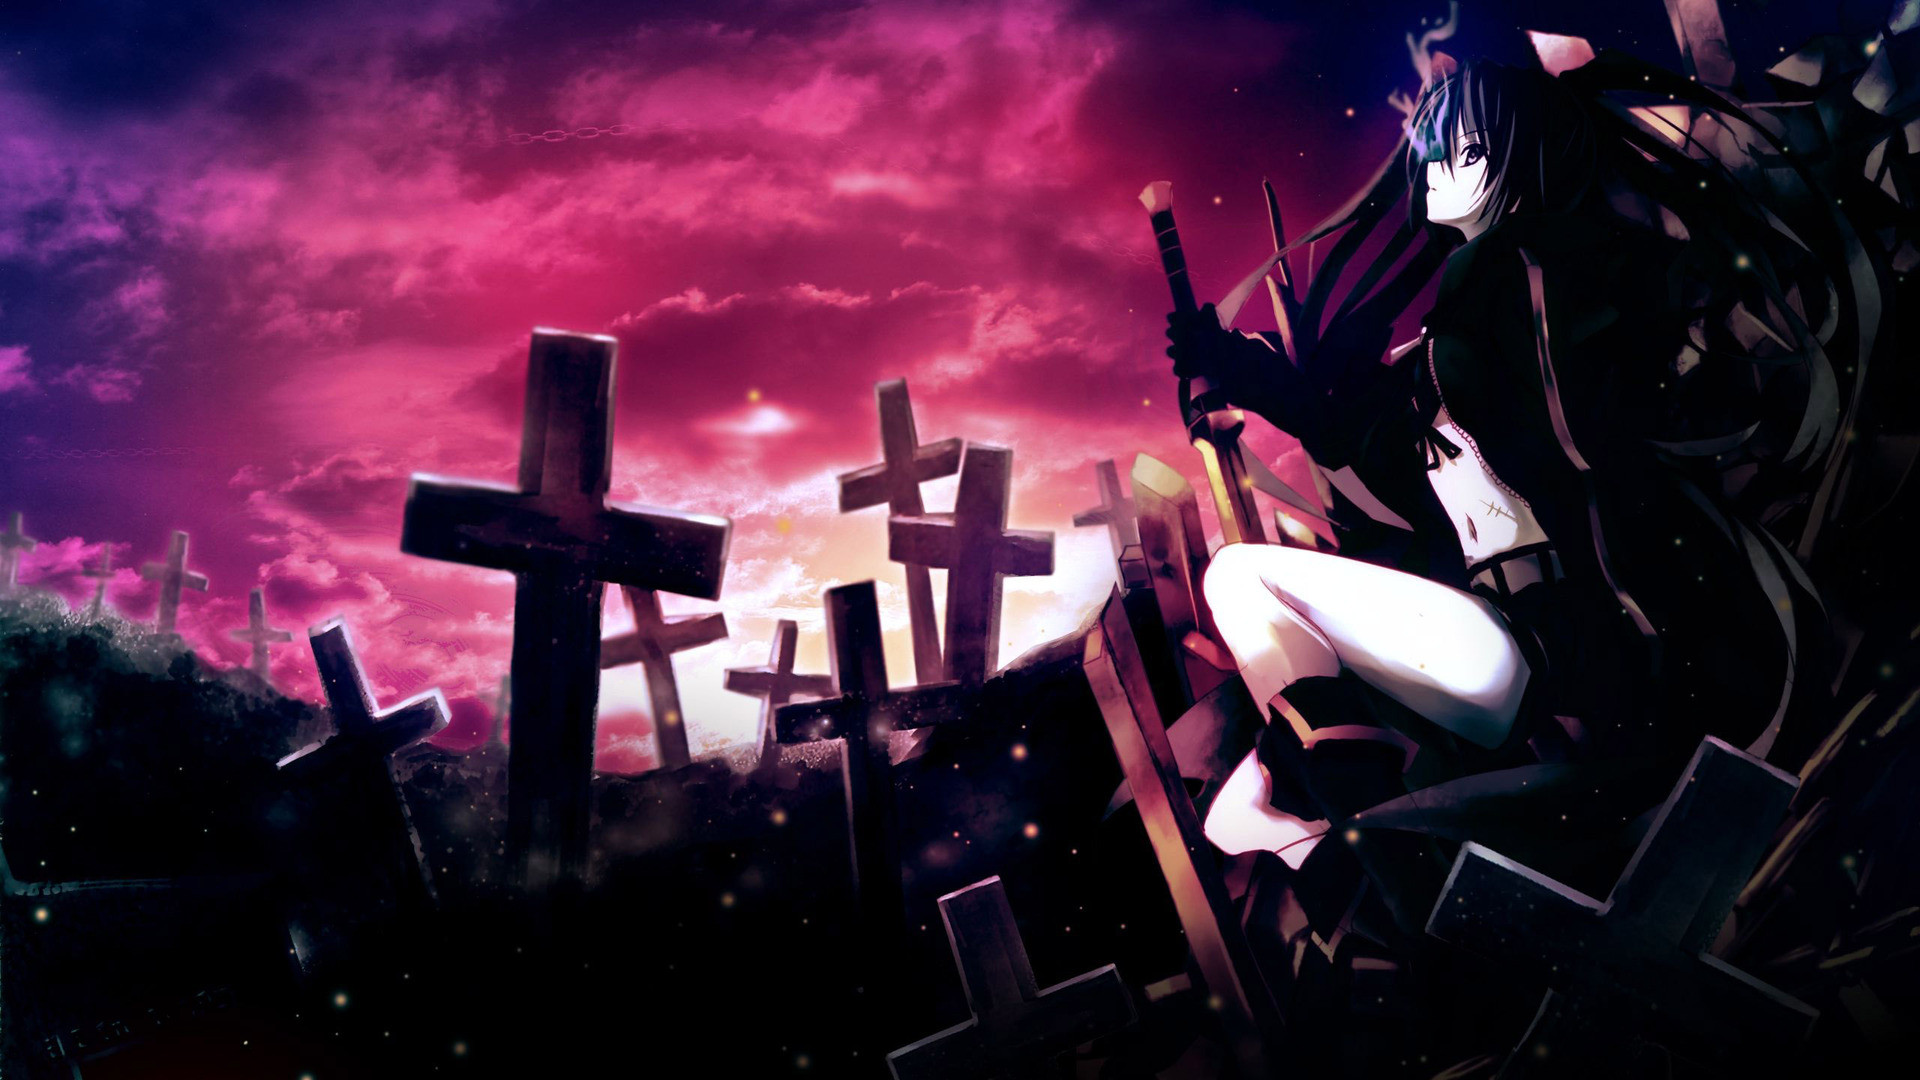 … Download Insane Black Rock Shooter Wallpapers HD:76-BRF Pictures,  Top4Themes Pack IX